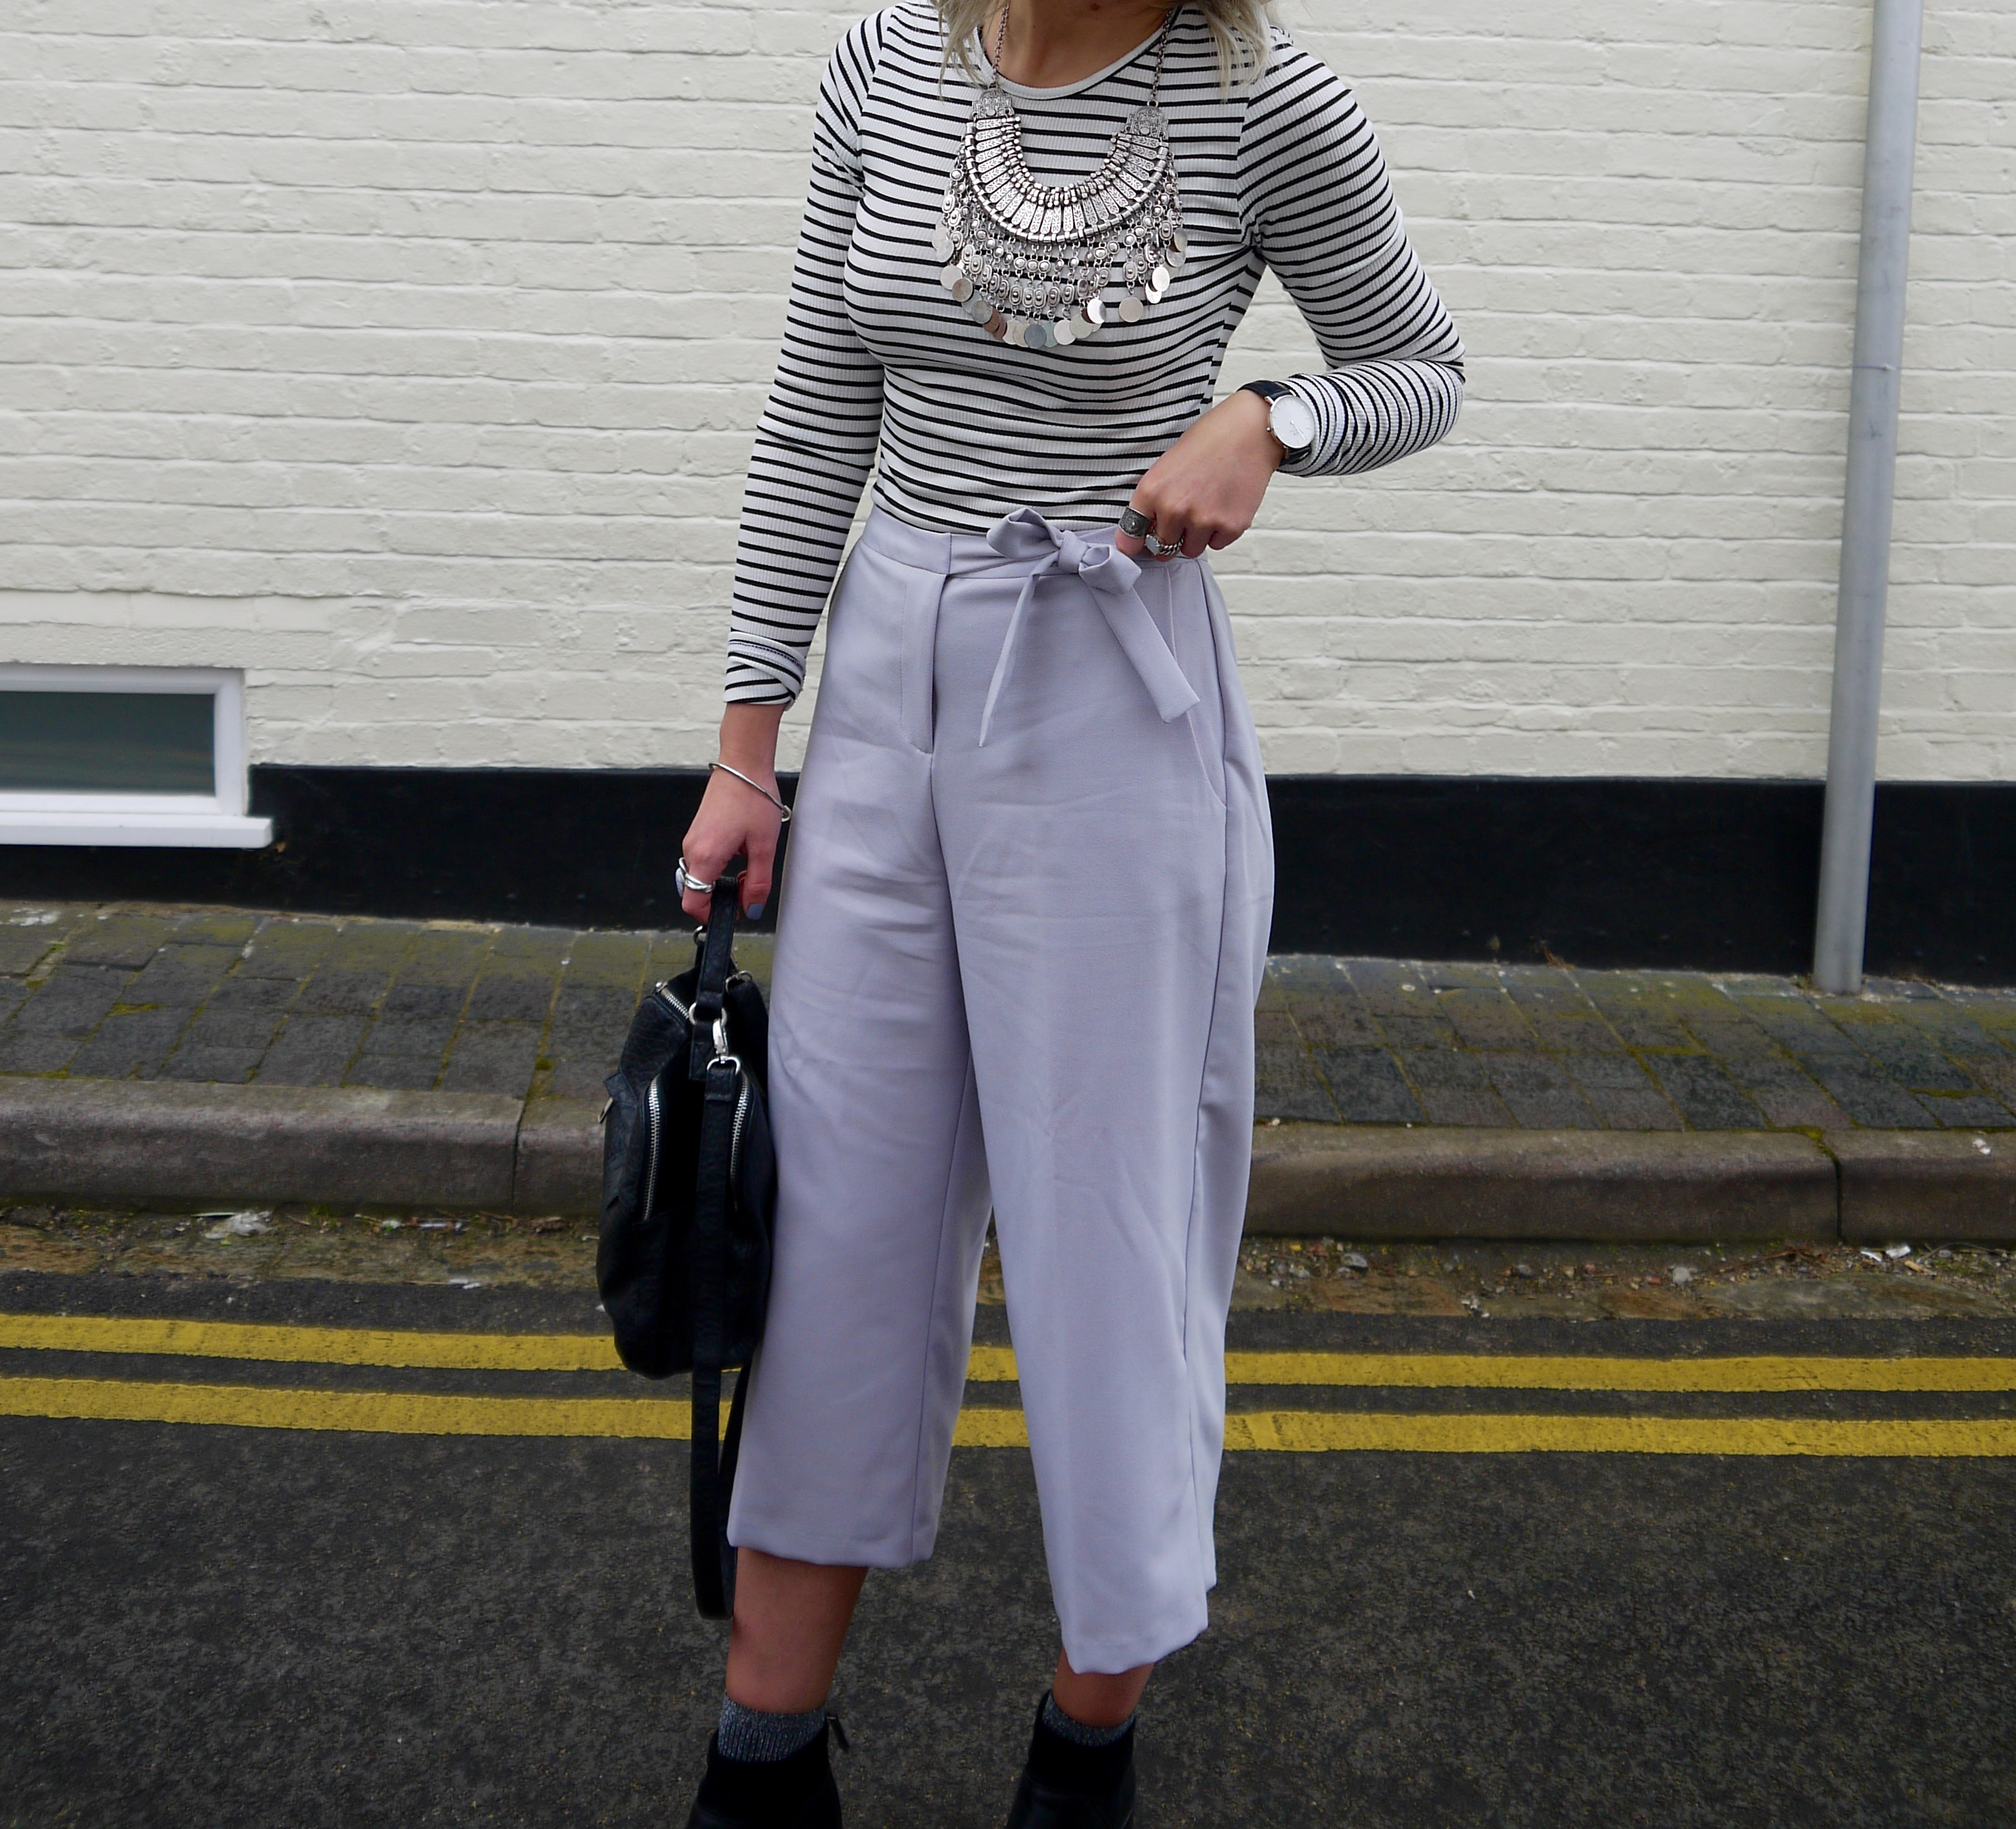 pastel clothing, middguided, culottes, stripe top, topshop pink trench coat, chunky silver necklace, blonde wavy hair, ash blonde hair, laura byrnes, lauras little locket